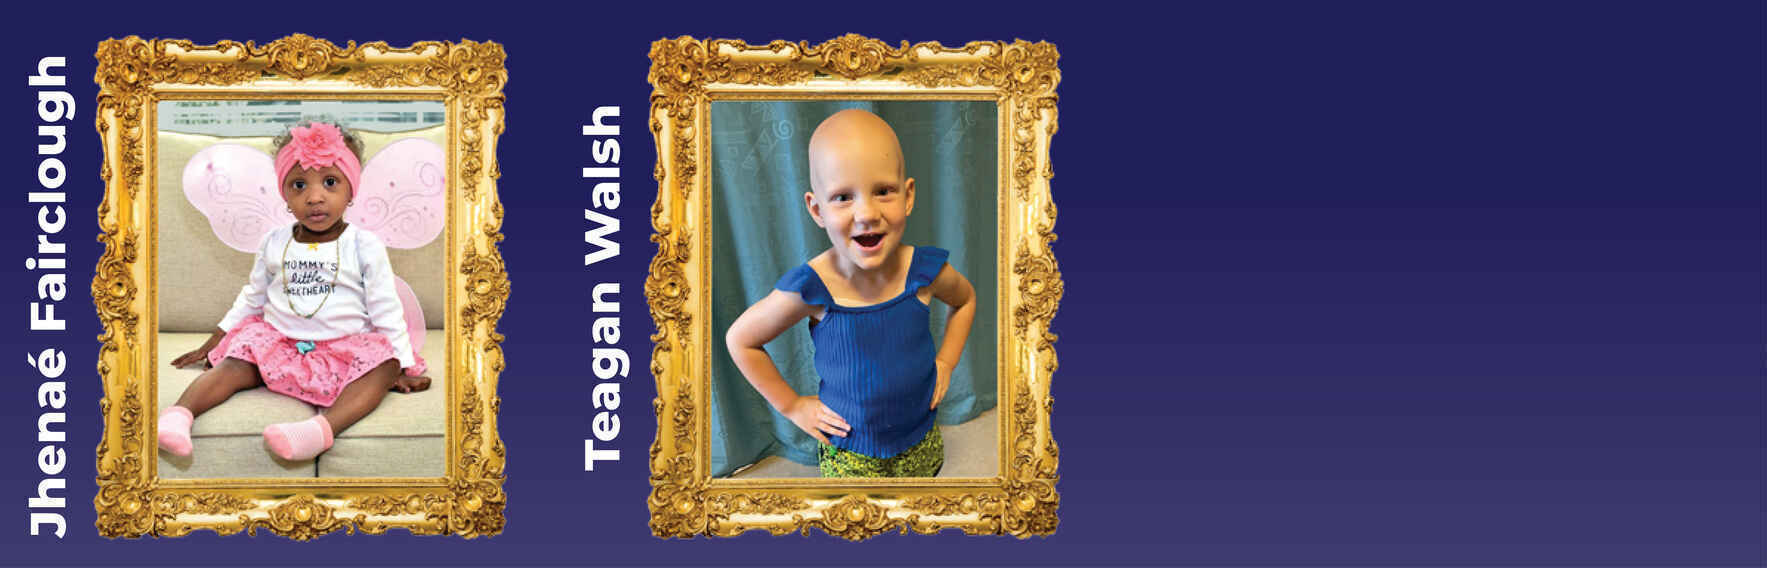 Donate today to help Elijah and Louis! image